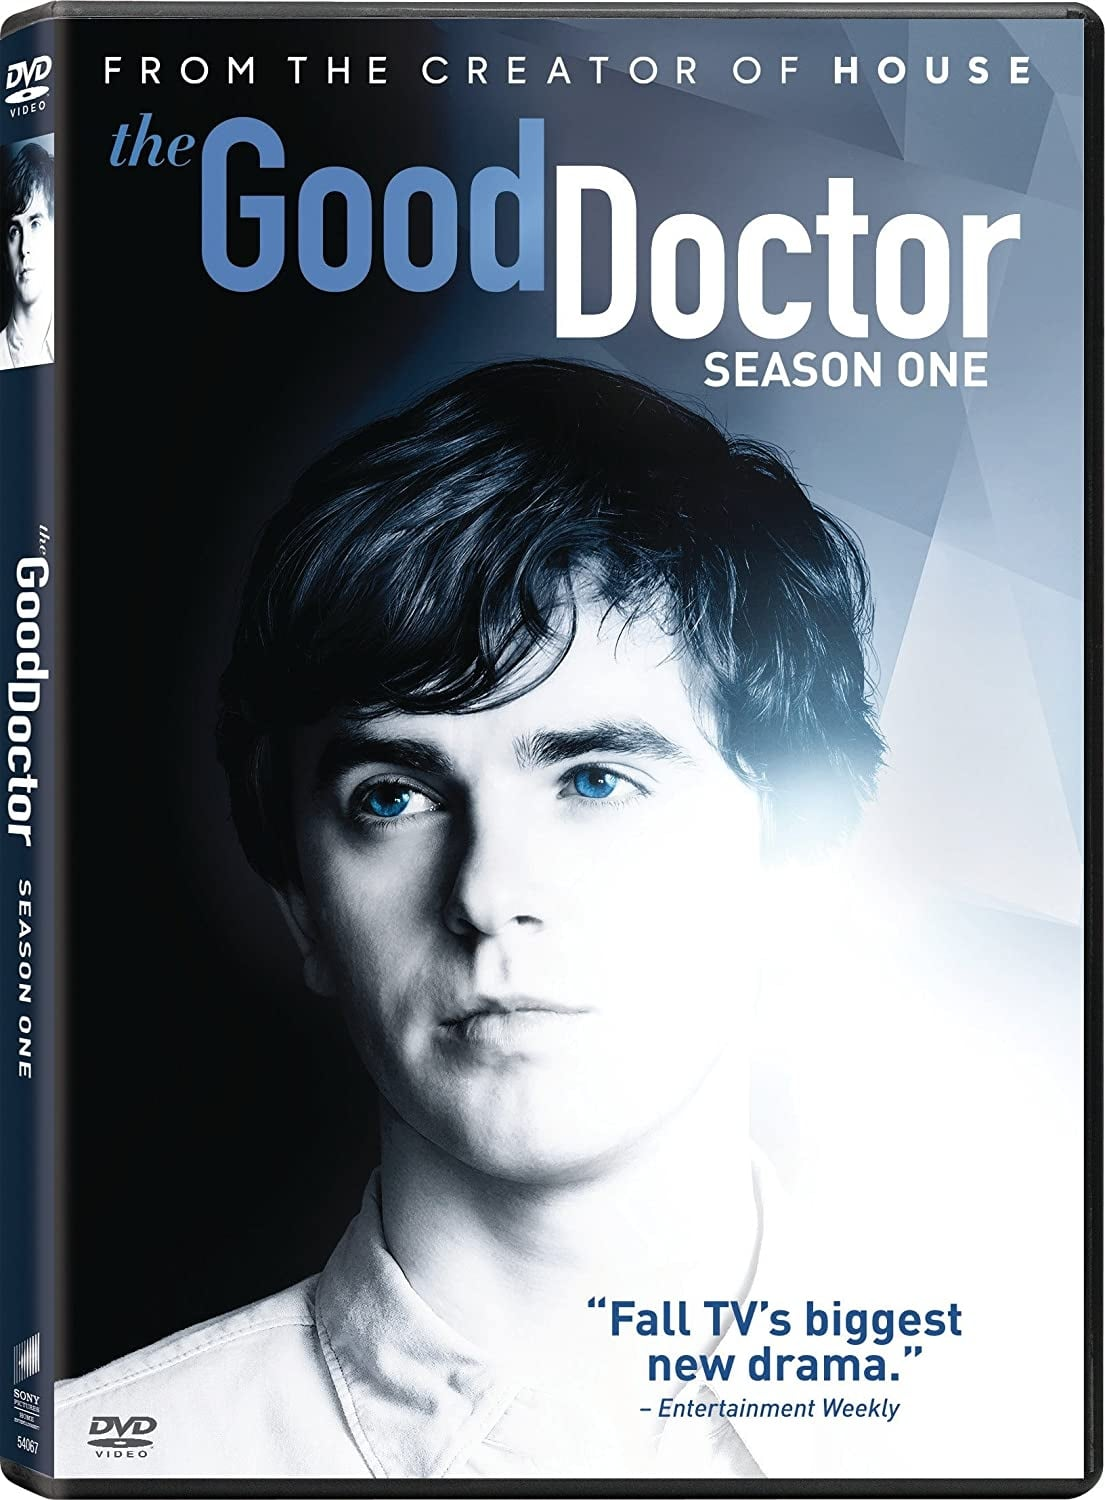 The Good Doctor (1970)